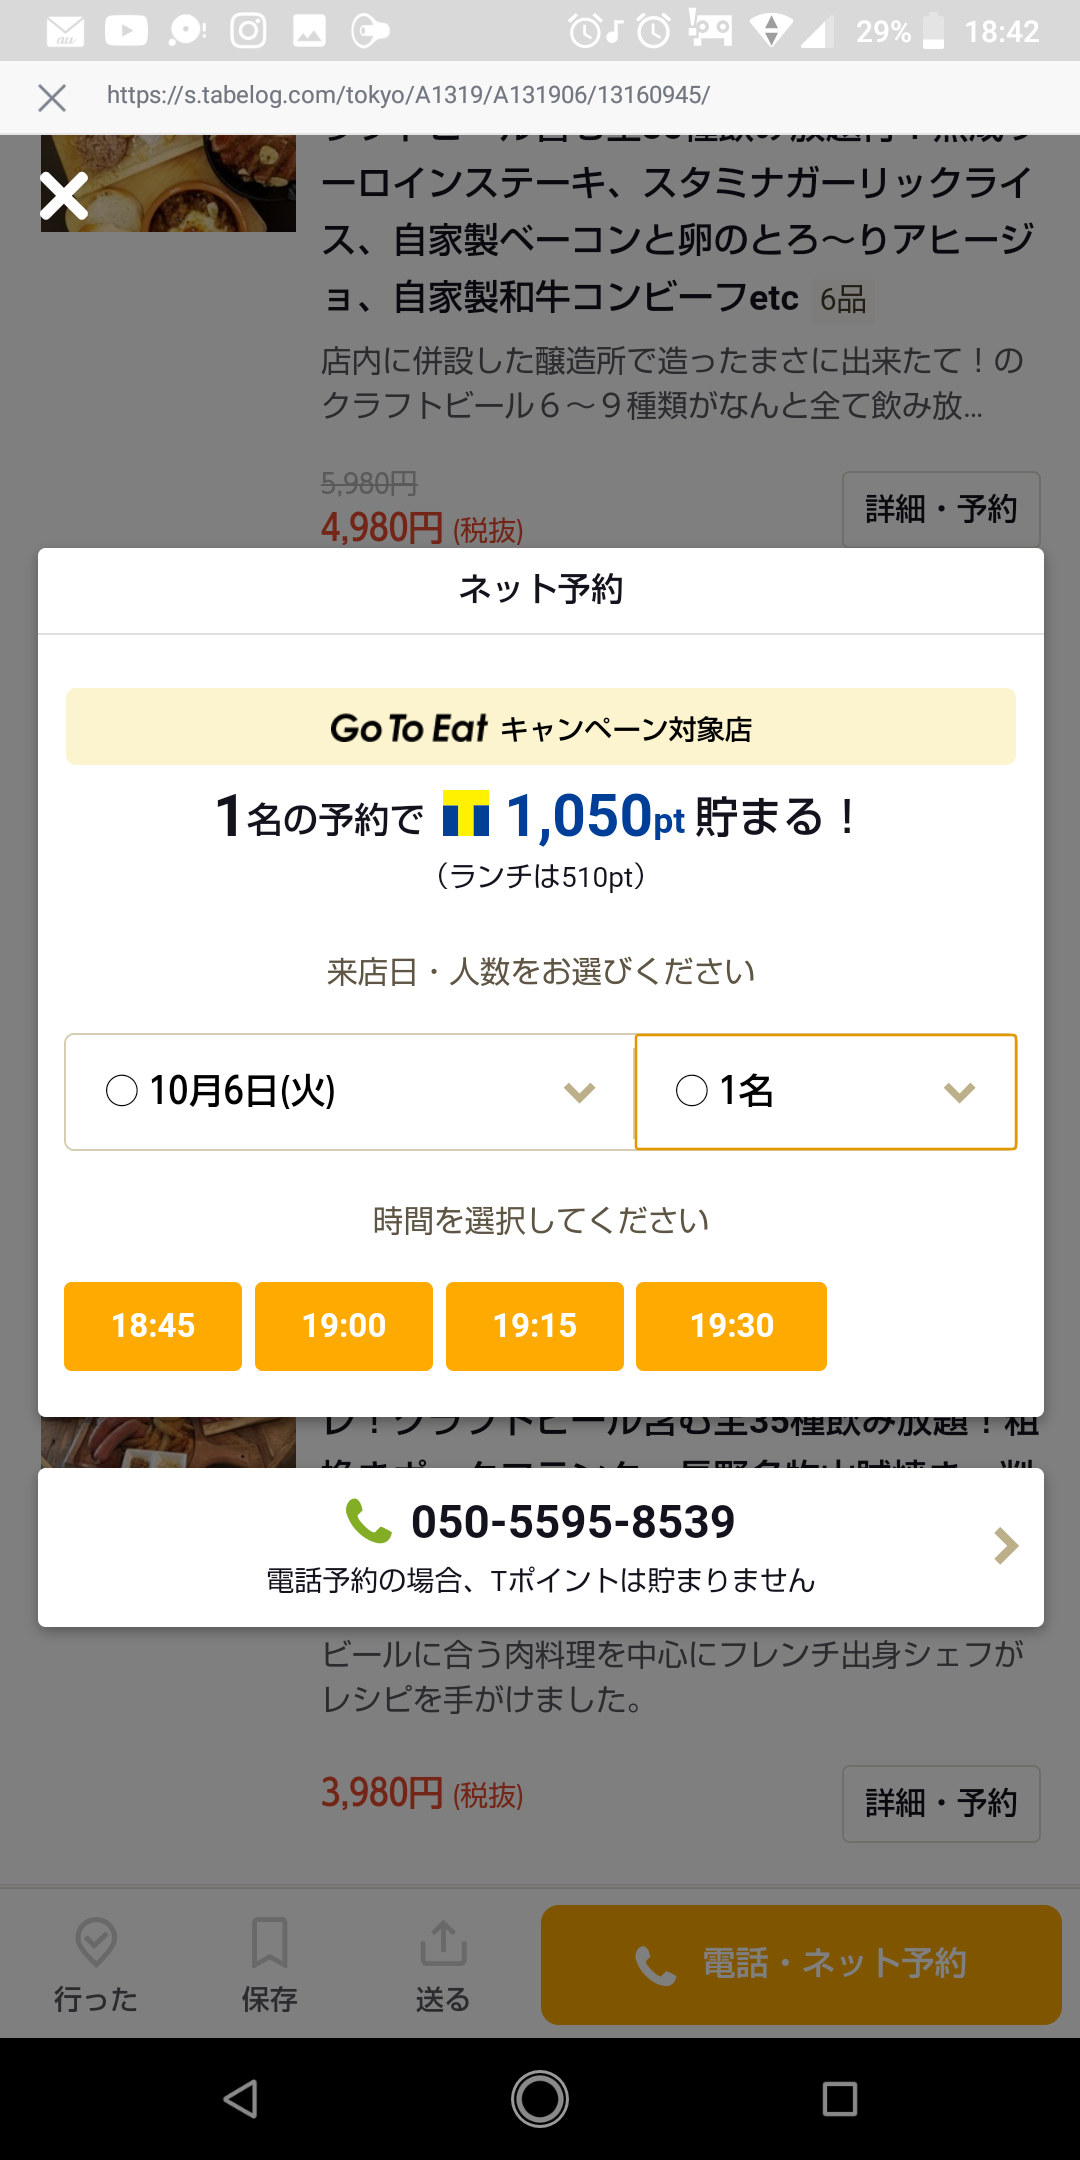 Go To Eat予約画面